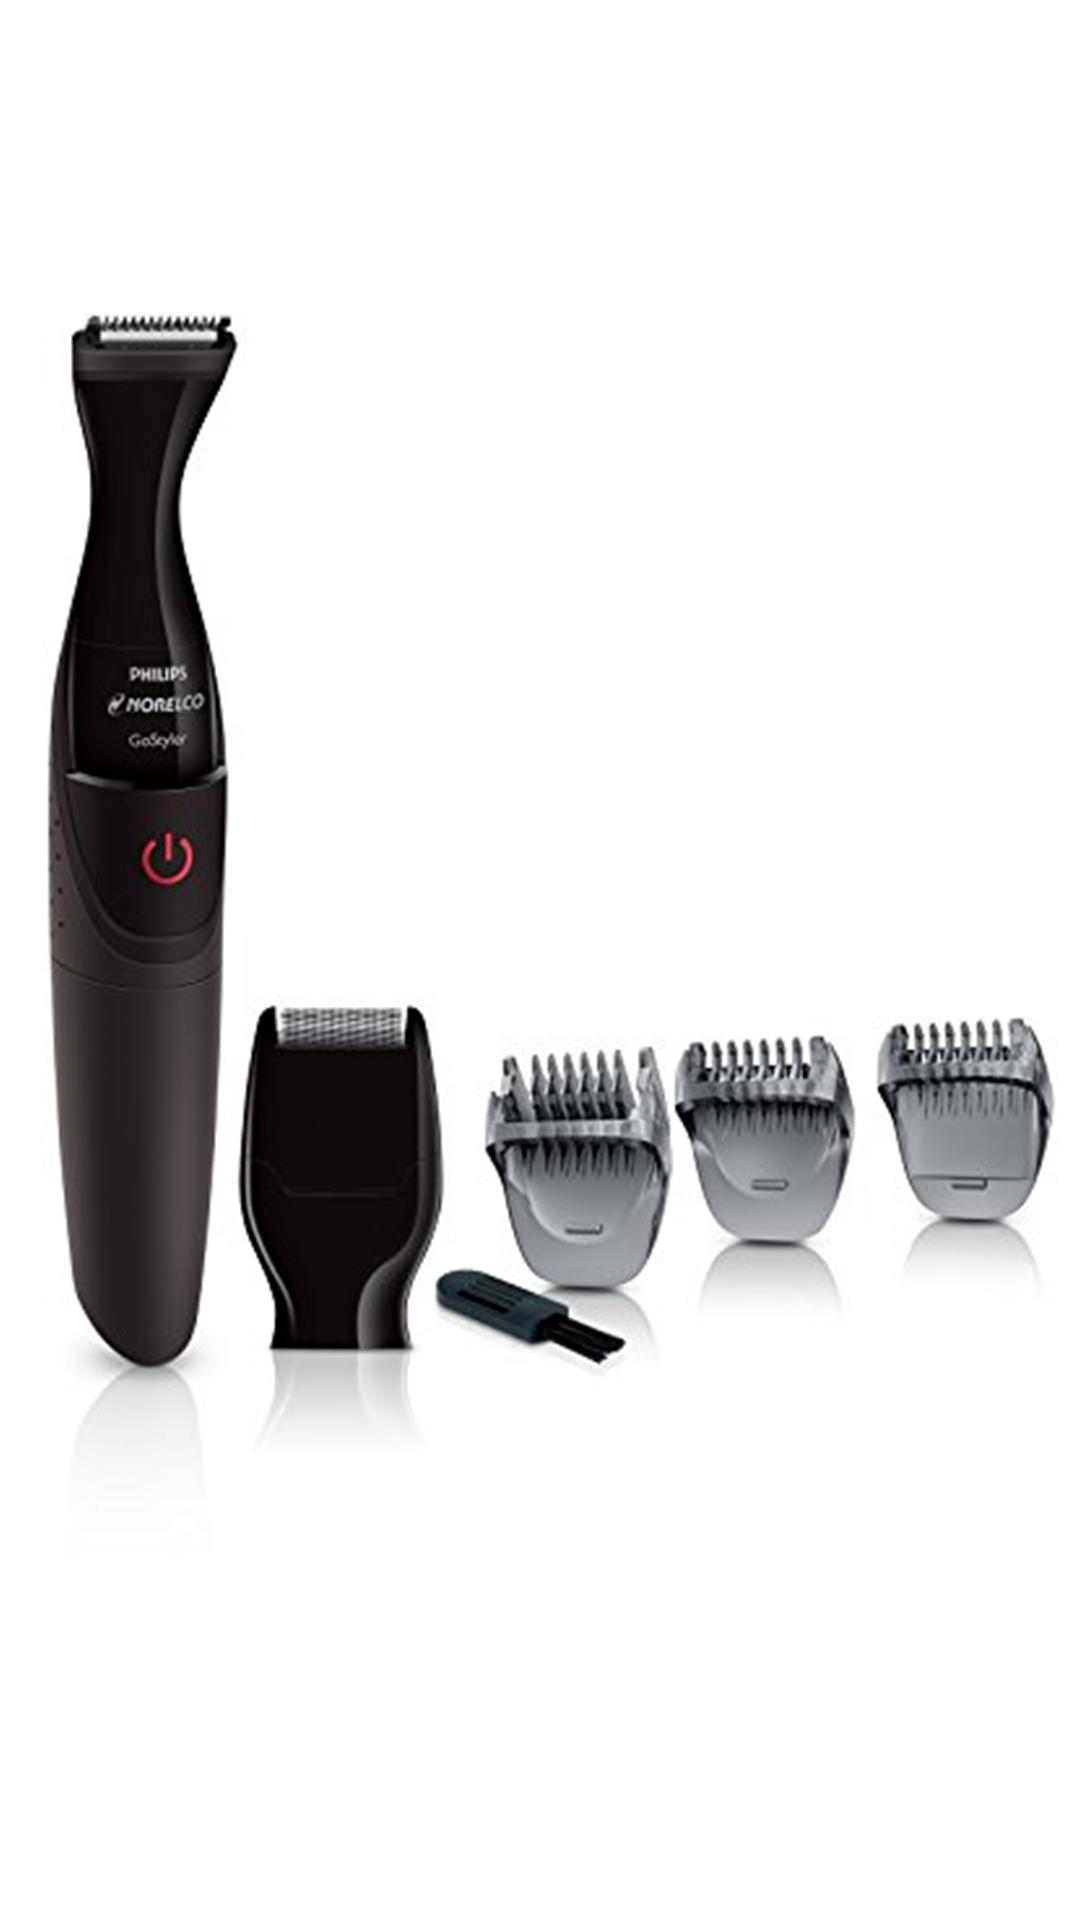 Philips Norelco FS9185/42 Trimmer For Men (Black)